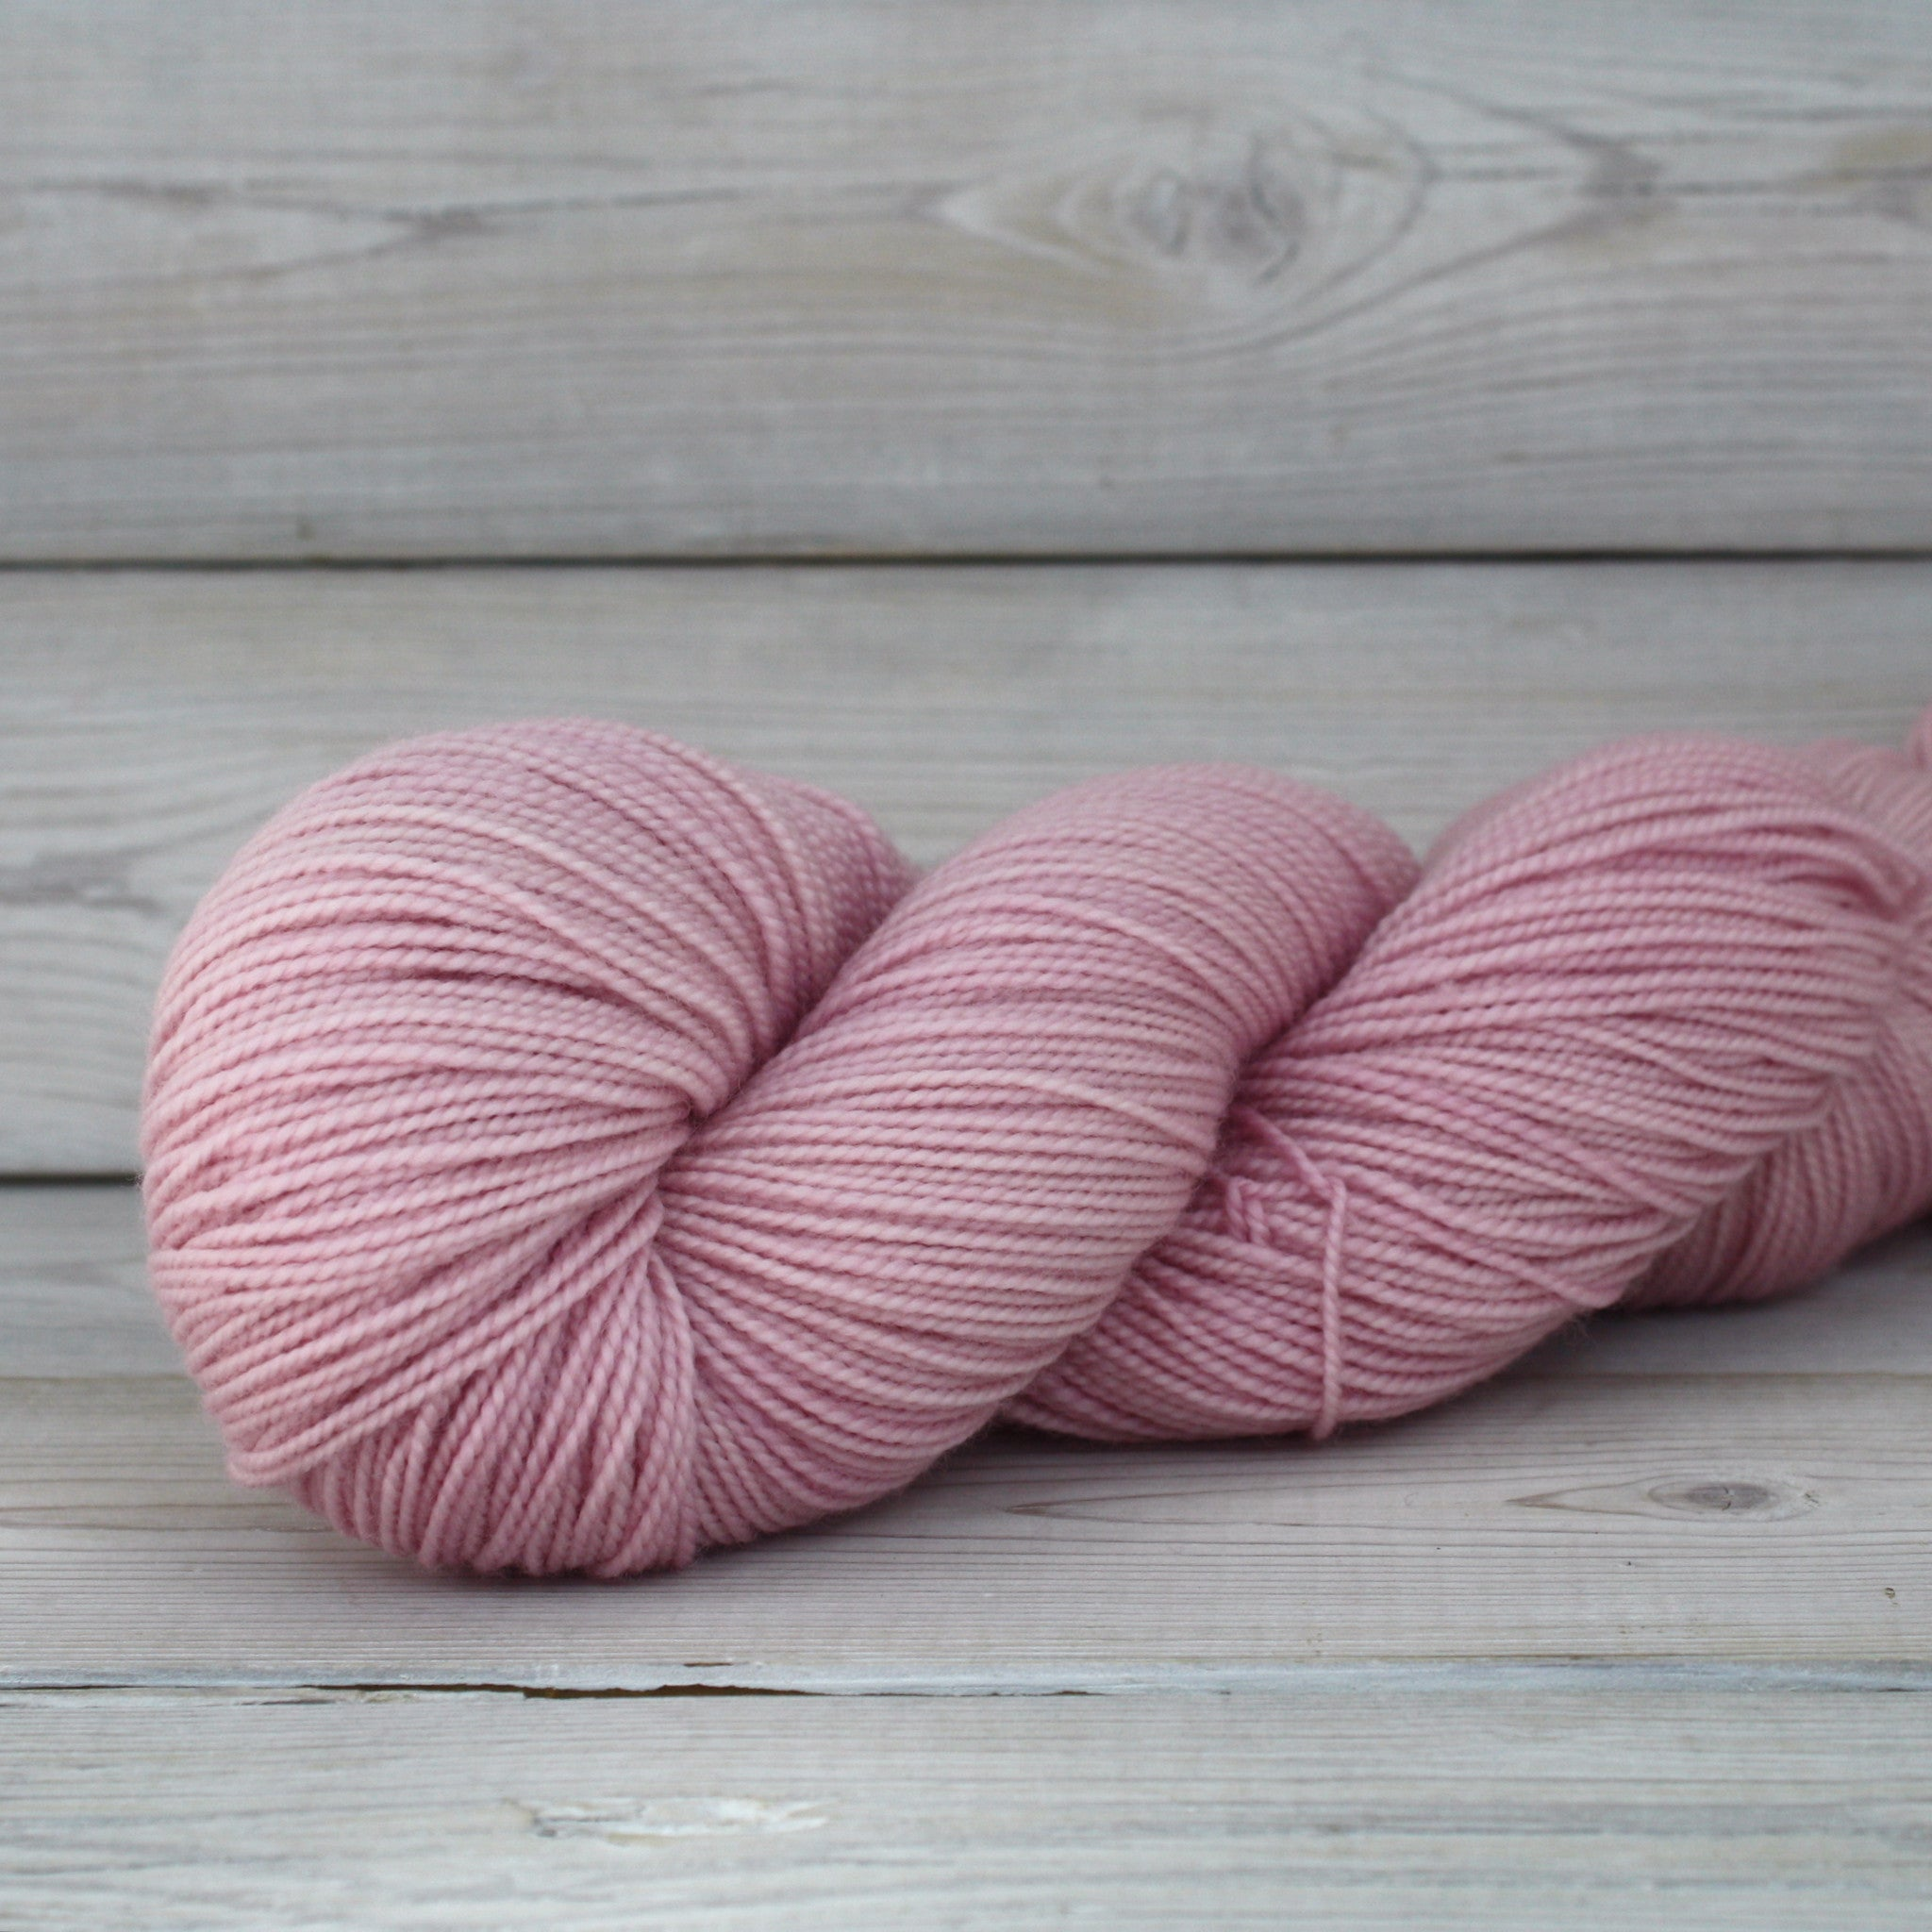 Celeste Yarn | Colorway: Cherry Blossom